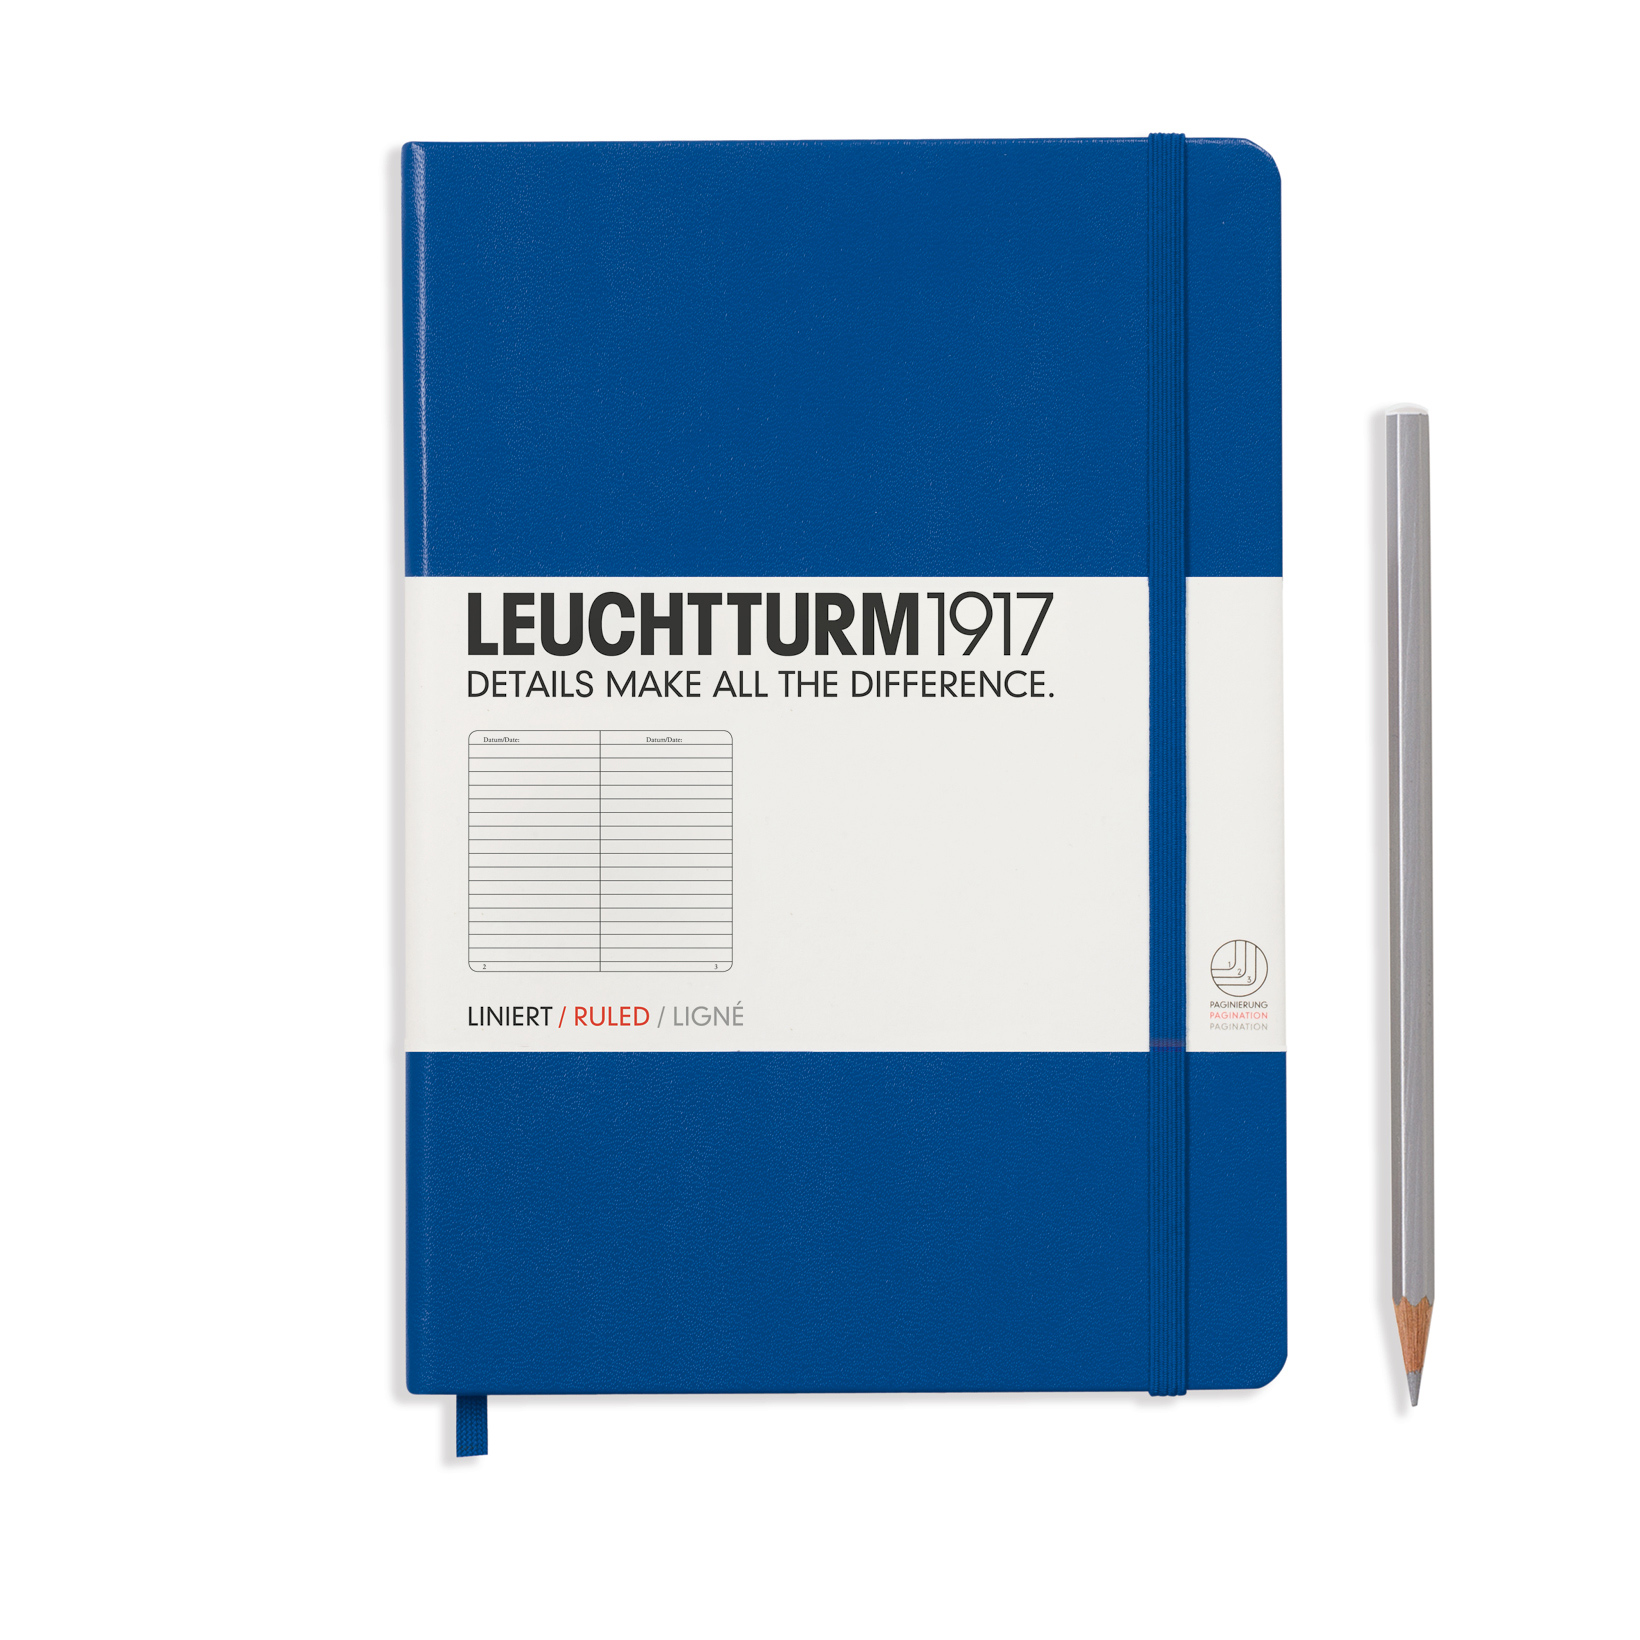 Leuchtturm Medium Hardcover Lined Royal Blue